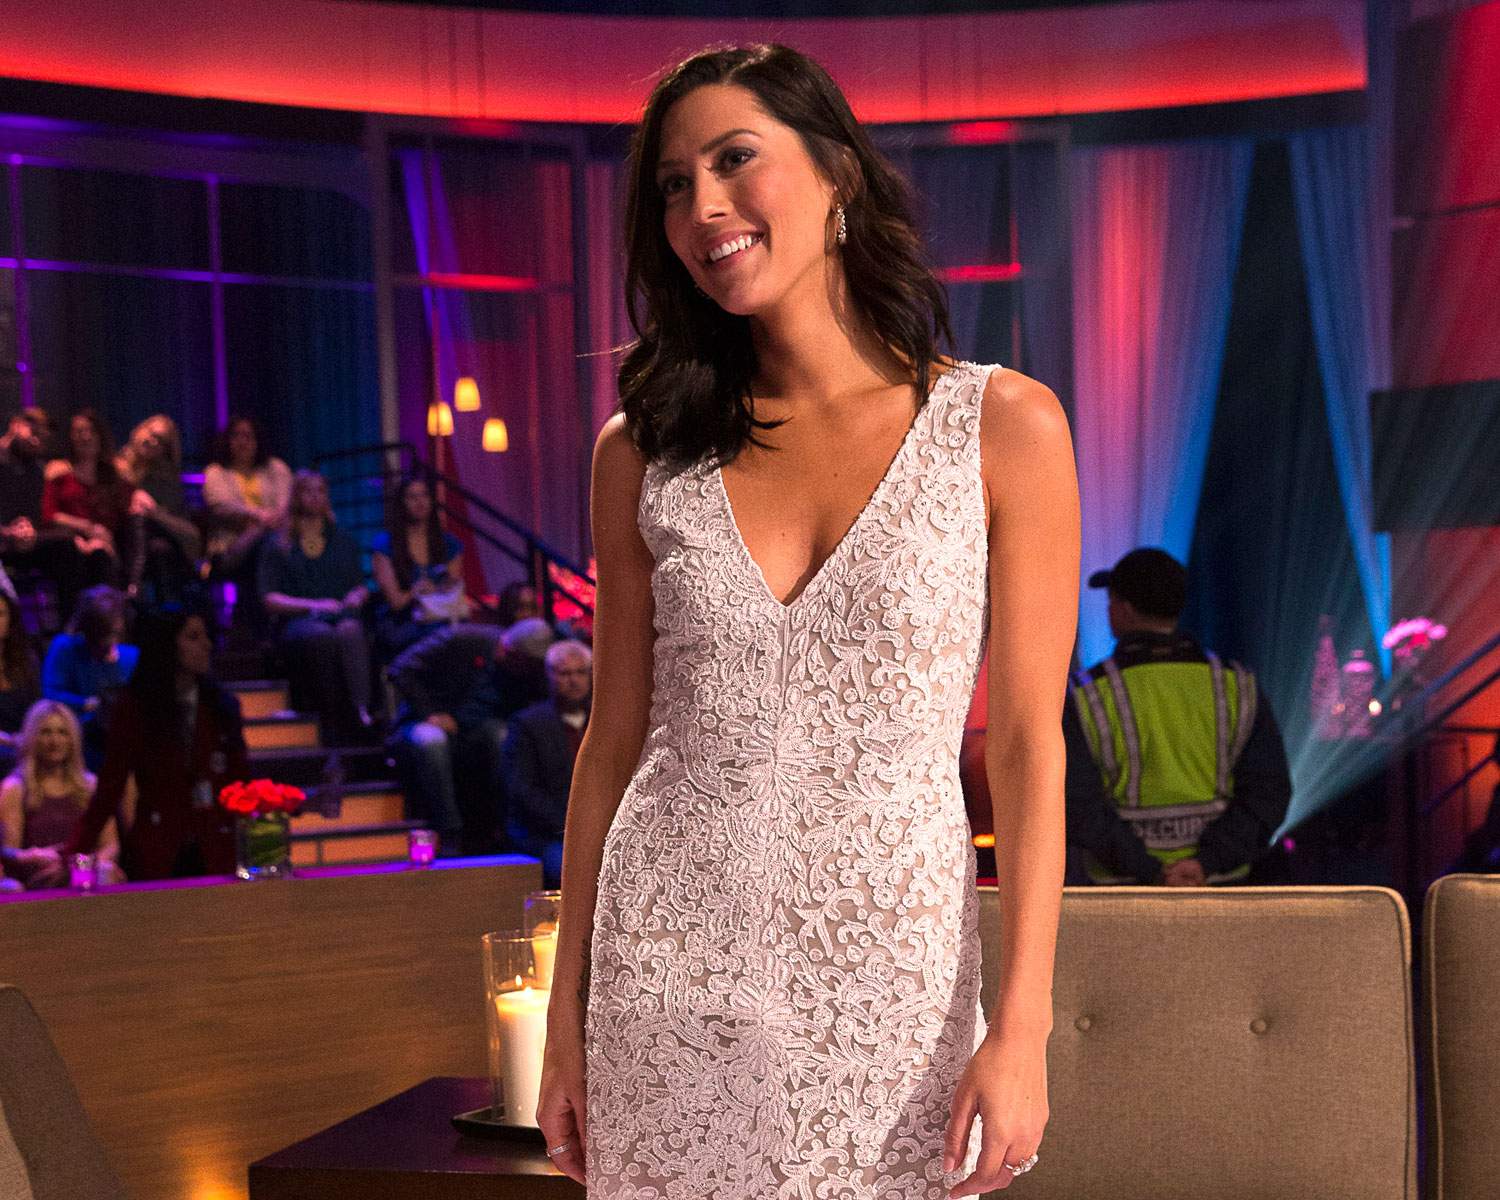 1e1de63a3c6c The Bachelorette Season 14 Revealed After Dramatic  Bachelor  Finale